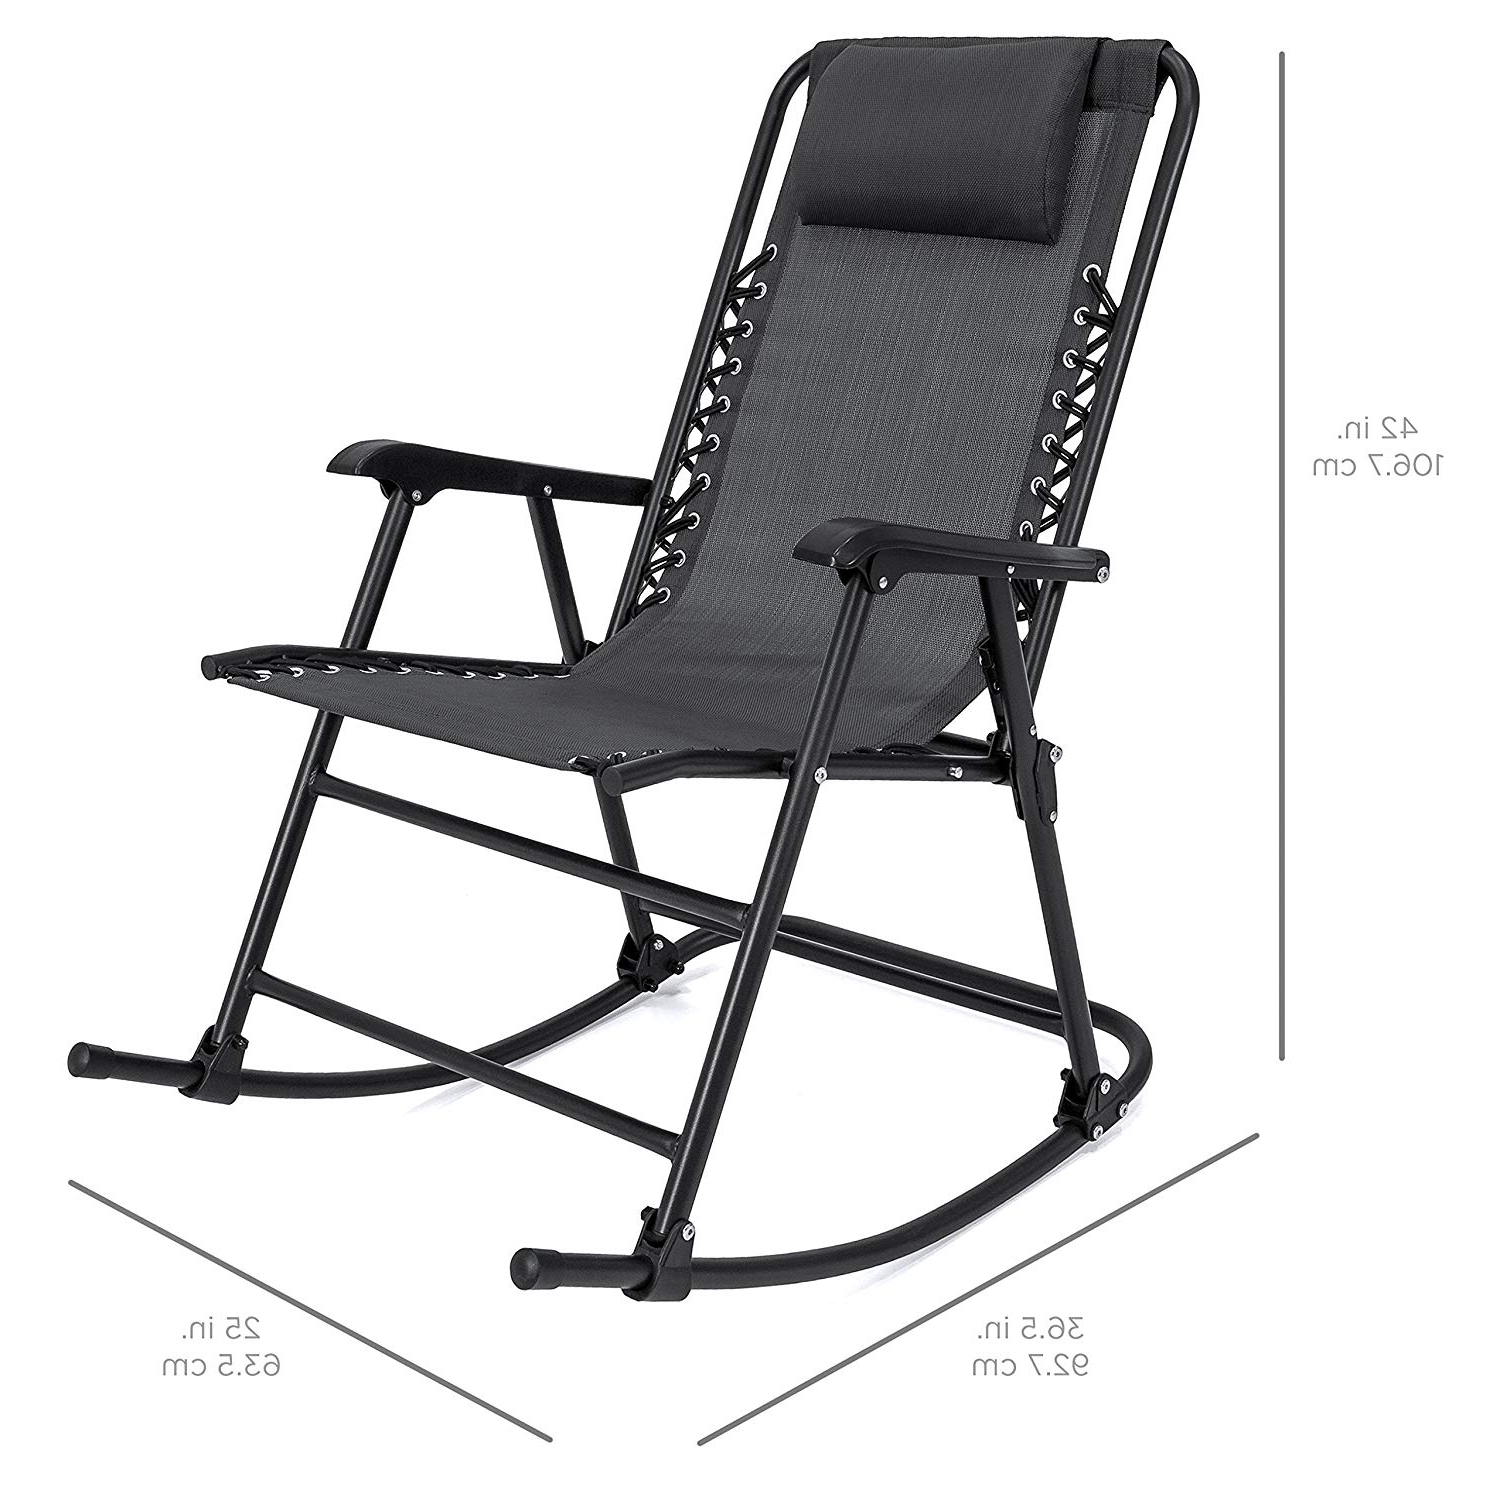 Amazon: Black Folding Foldable Rocking Rocker Armrest Throughout Well Known Black Outdoor Durable Steel Frame Patio Swing Glider Bench Chairs (View 4 of 30)